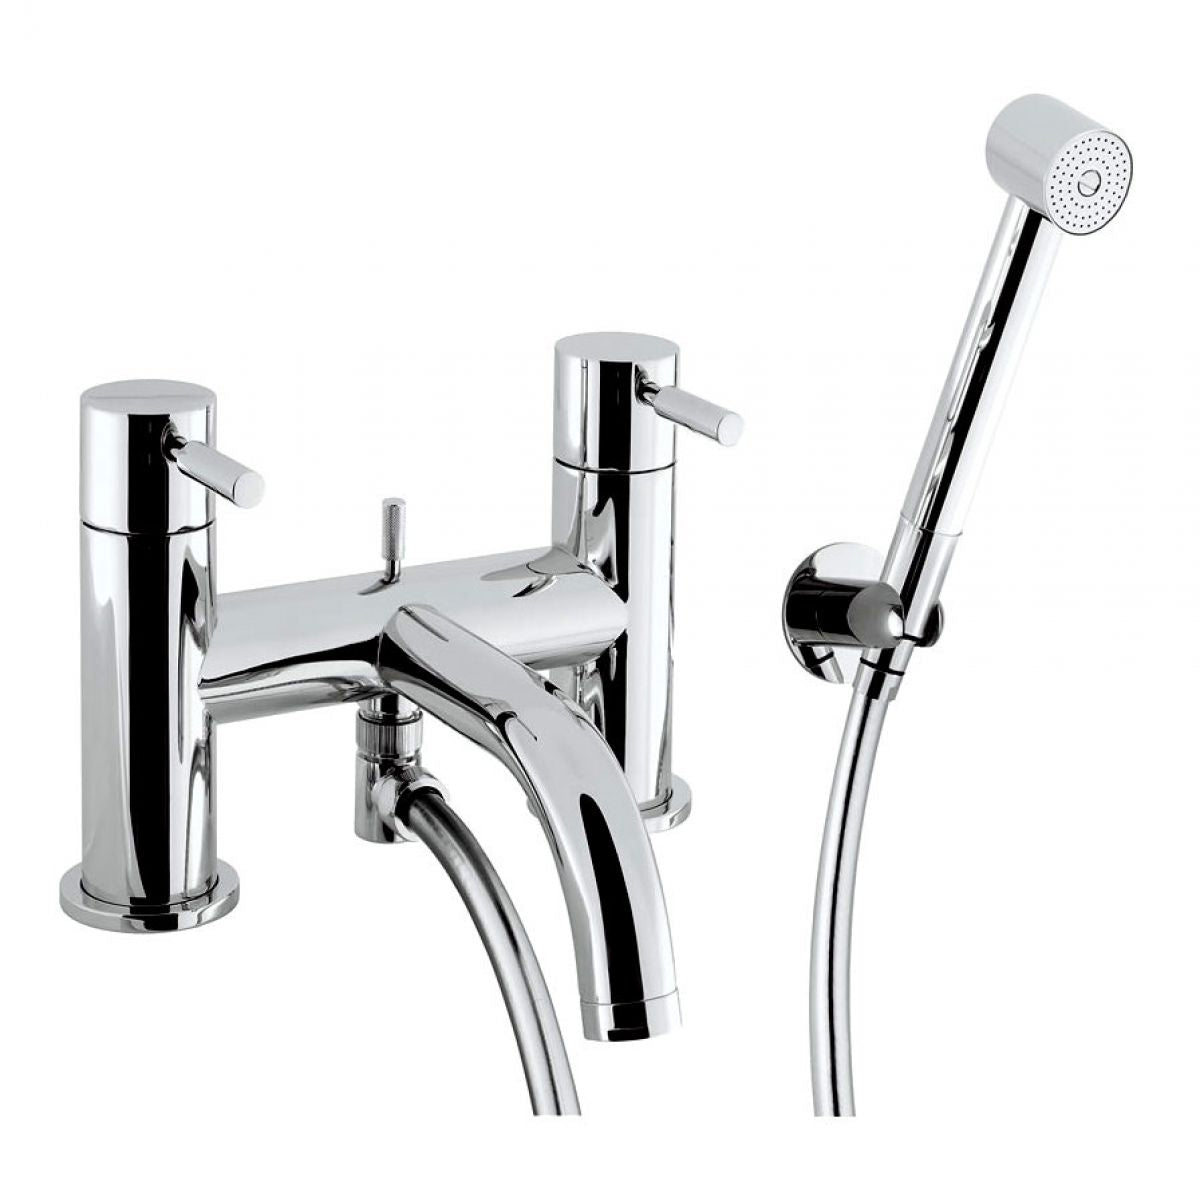 Britton Elegante Bath Mixer - Blue Sky Bathrooms Ltd